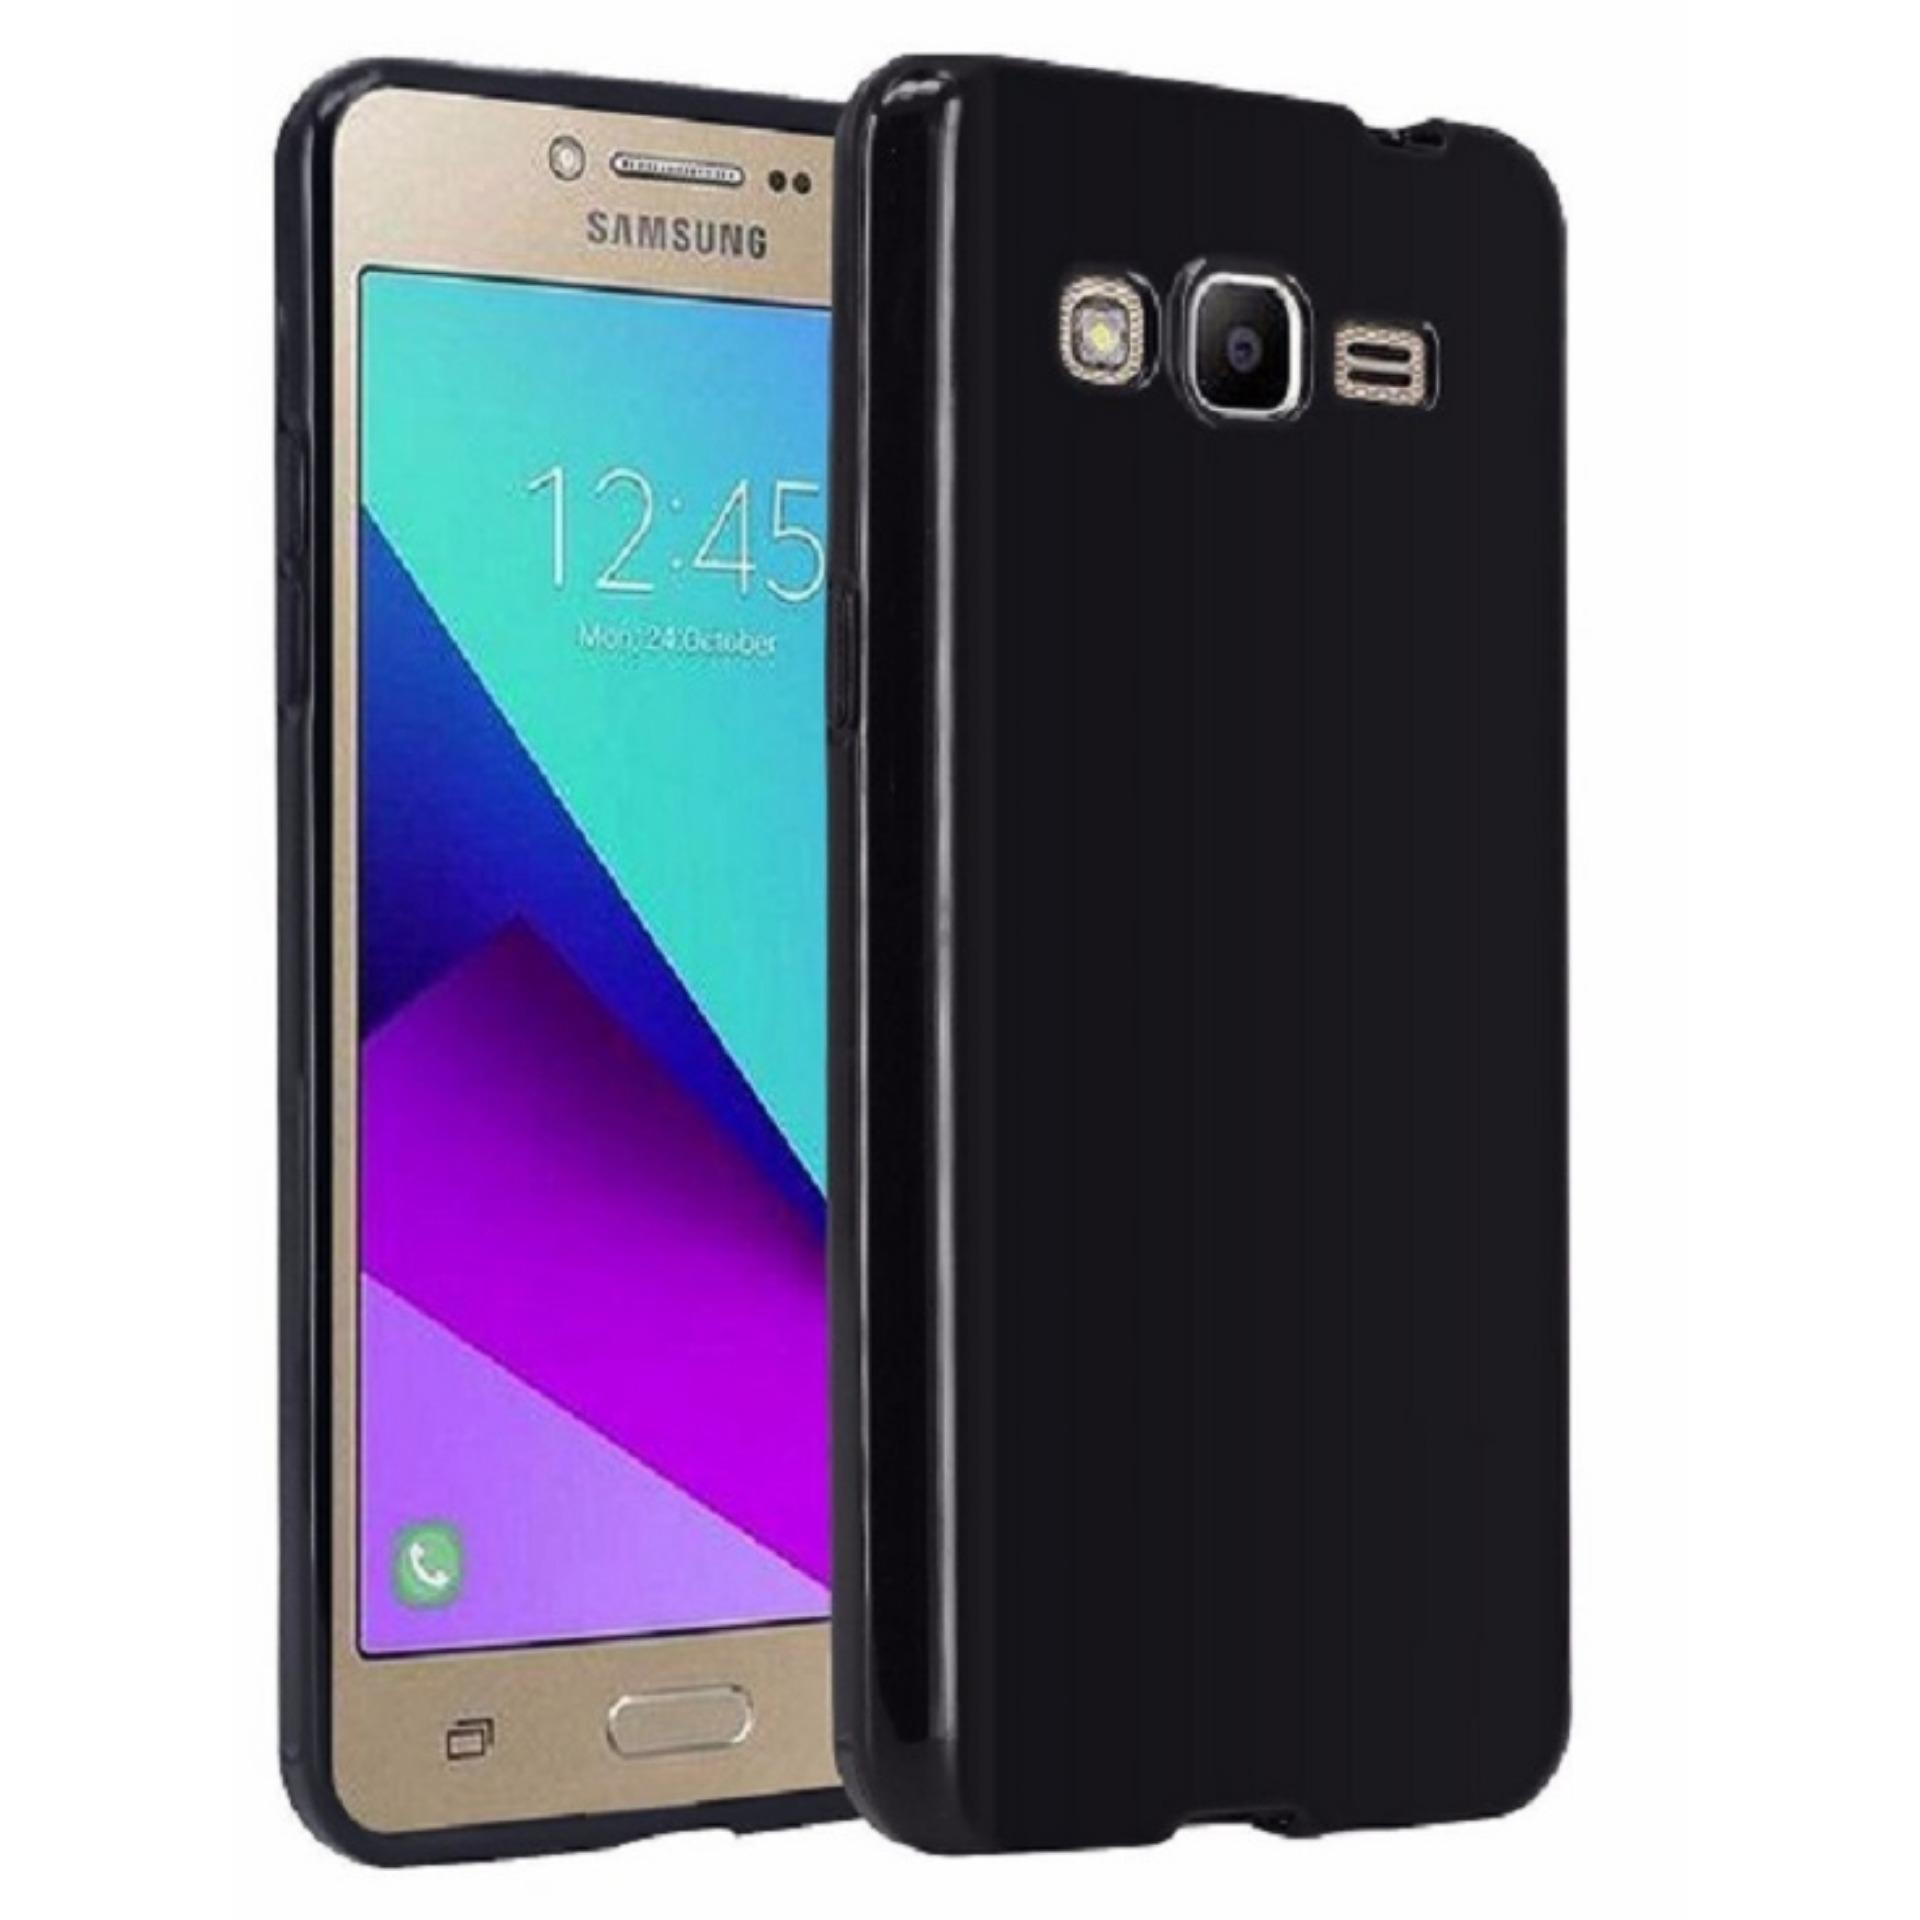 Kehebatan Darknight For Samsung Galaxy J7 Prime G610 4g Lte Duos